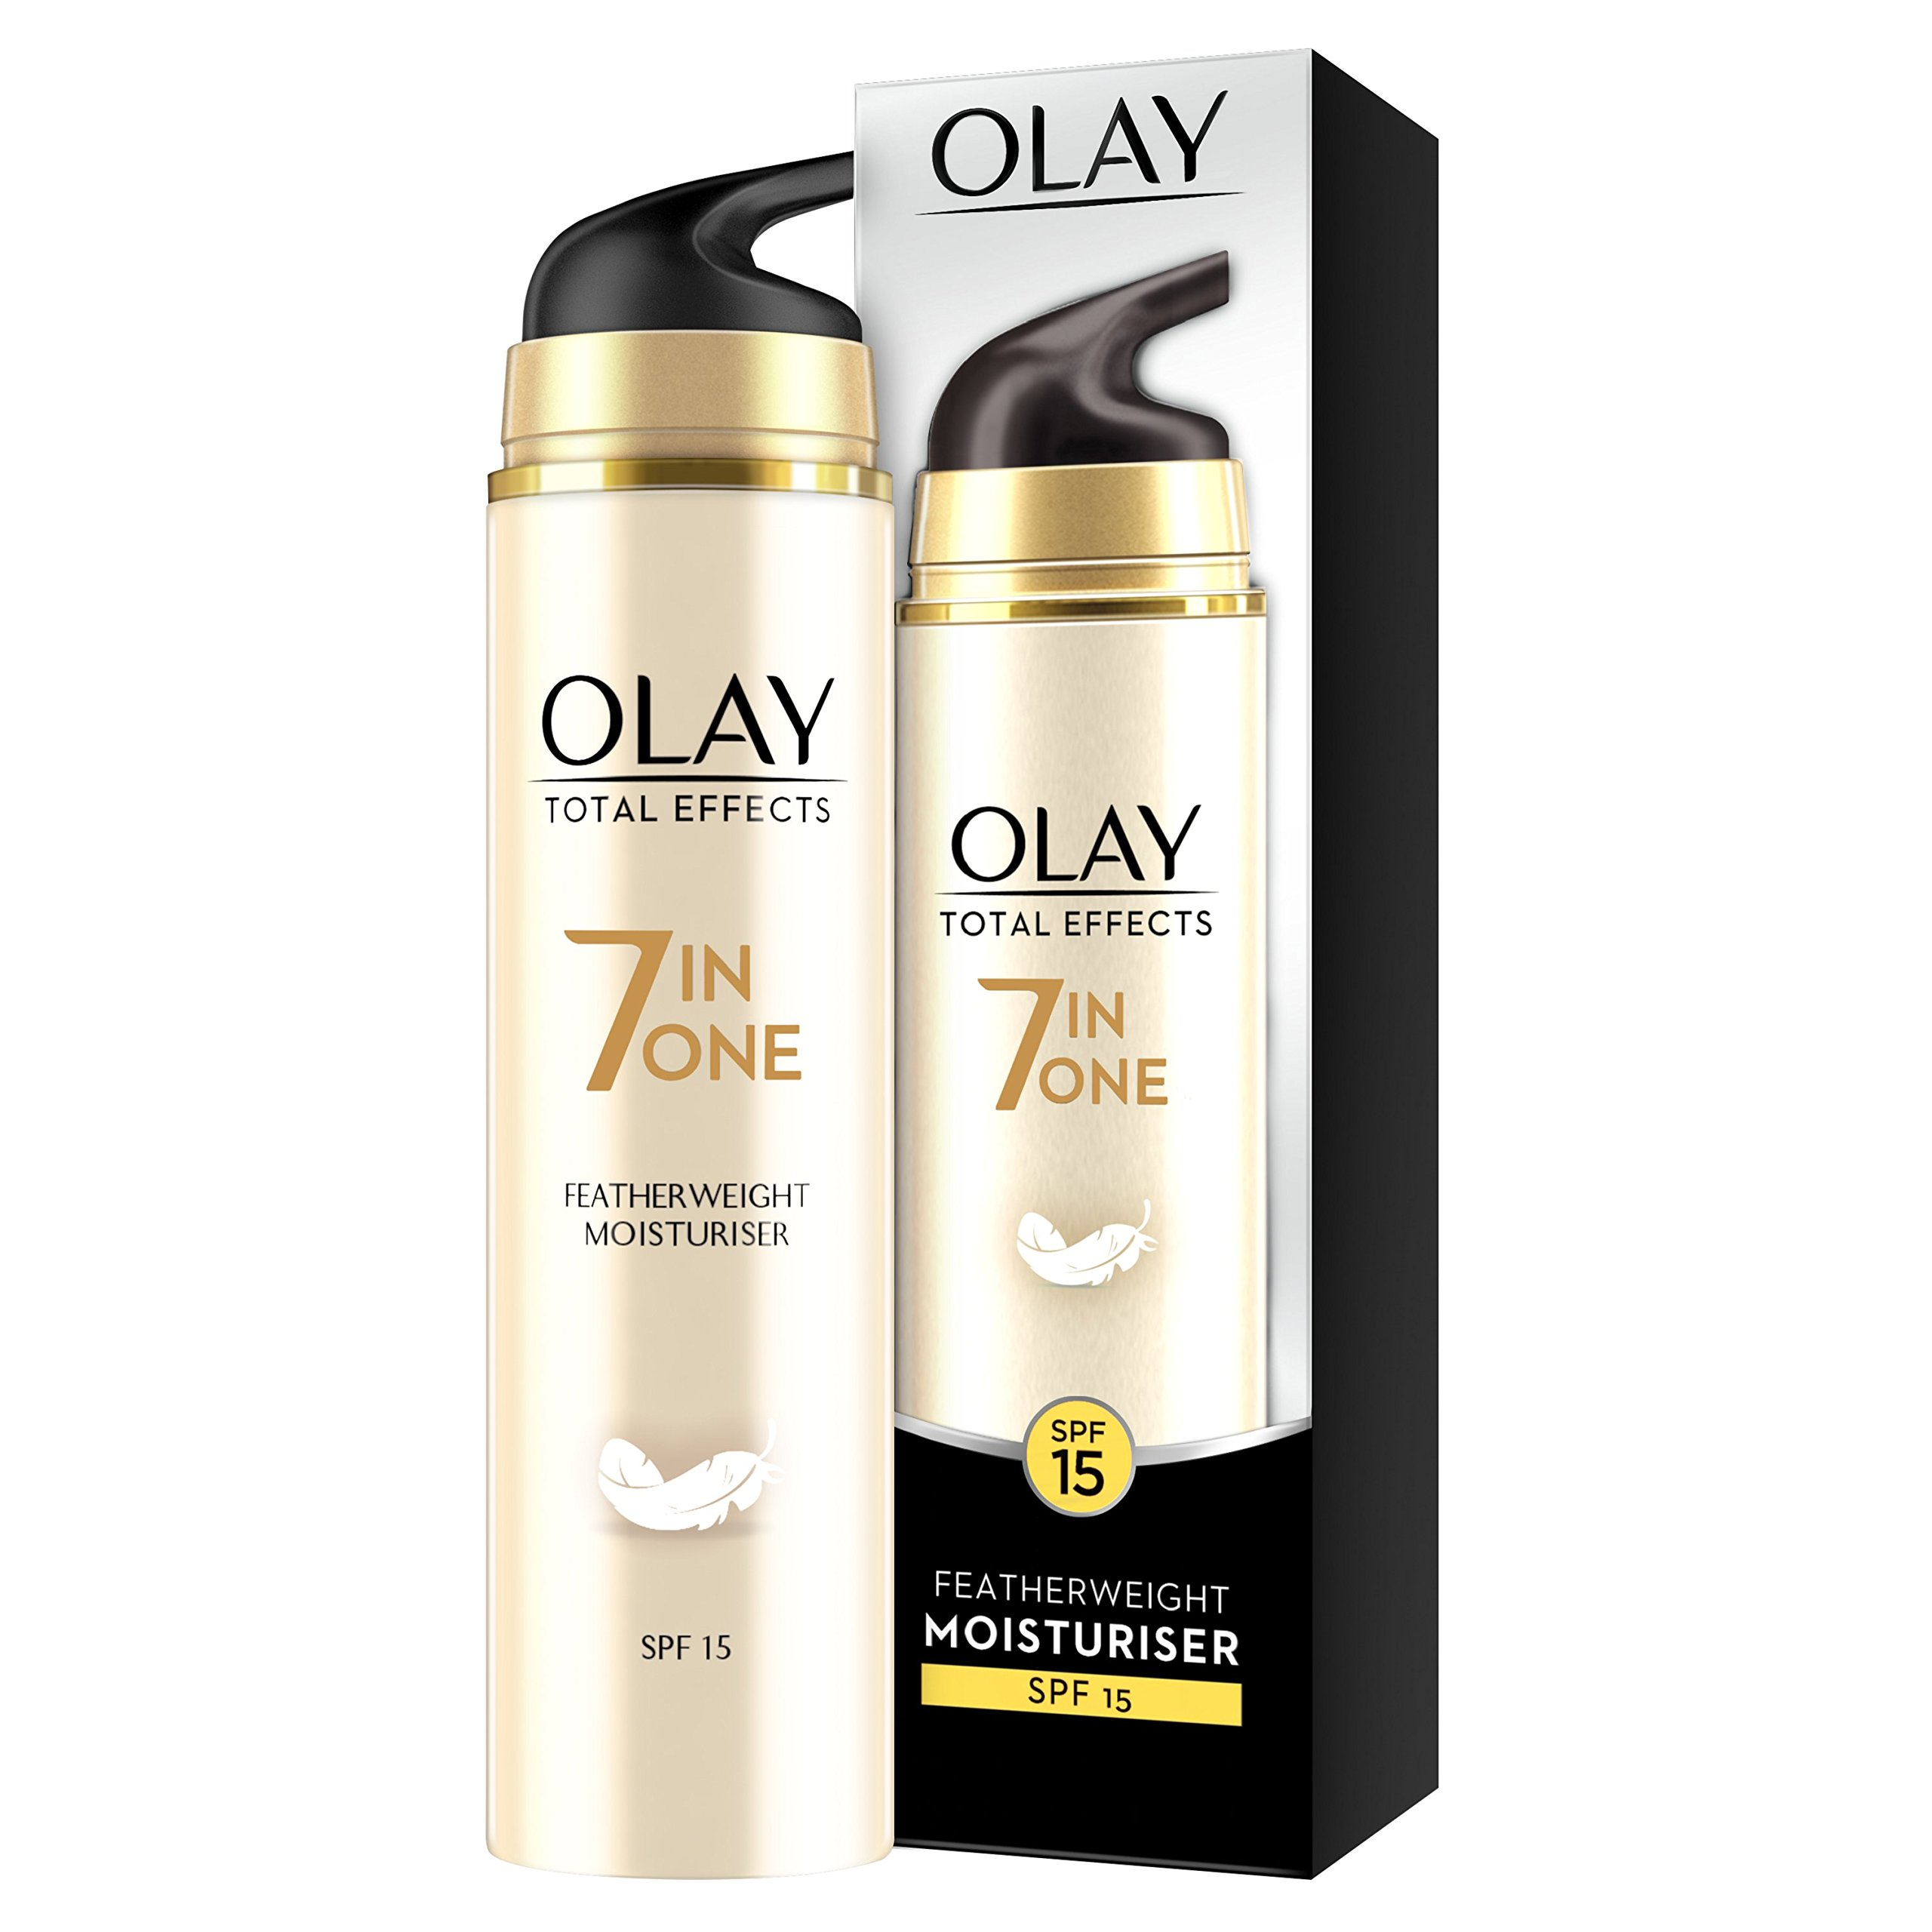 Total Effects by Olay Feather Weight Moisturizer SPF 15 1.7 fl oz